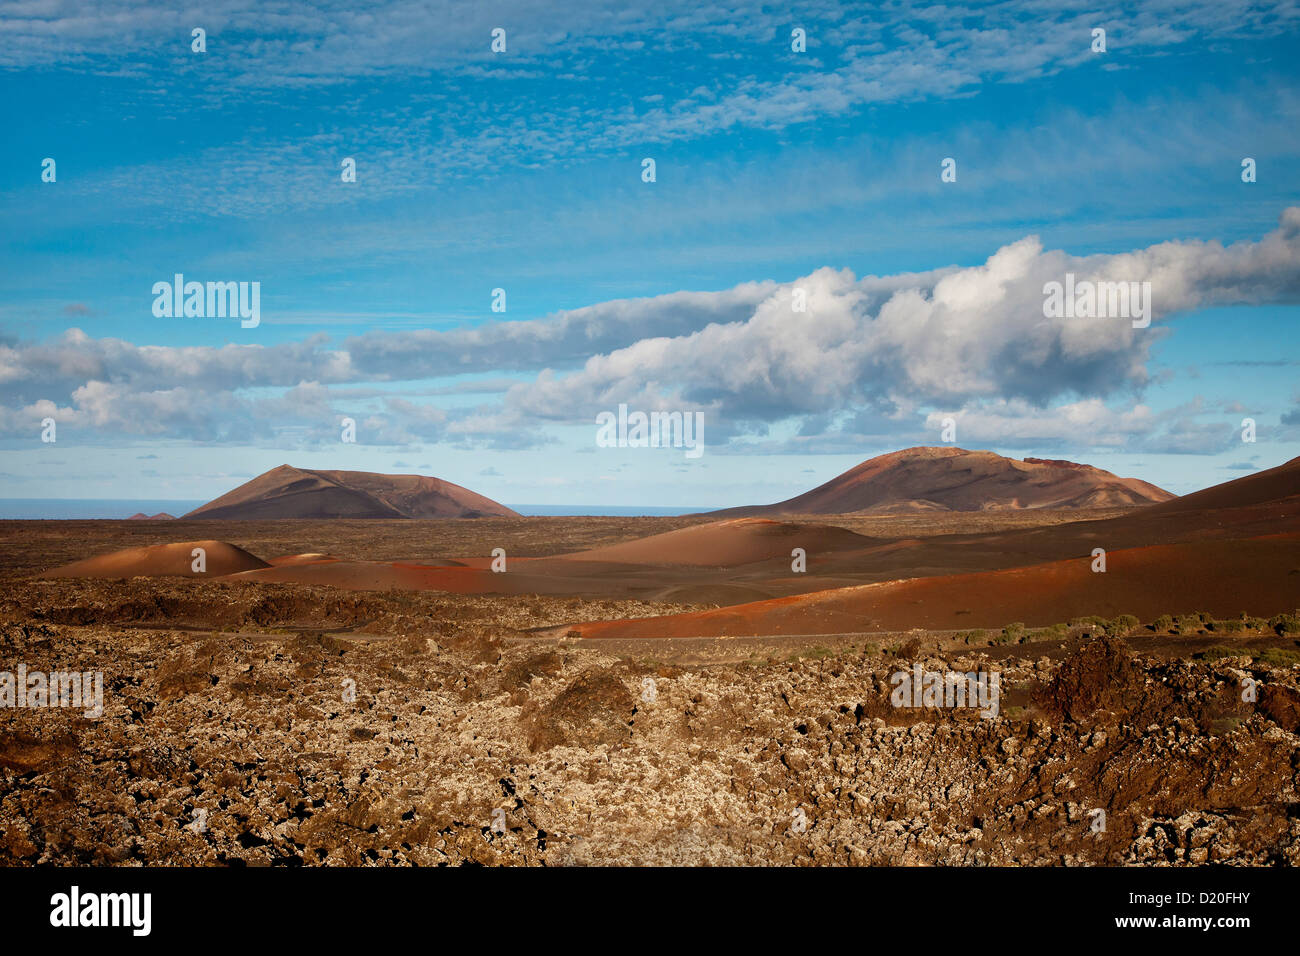 Volcanic landscape under clouded sky, Timanfaya National Park, Lanzarote, Canary Islands, Spain, Europe - Stock Image